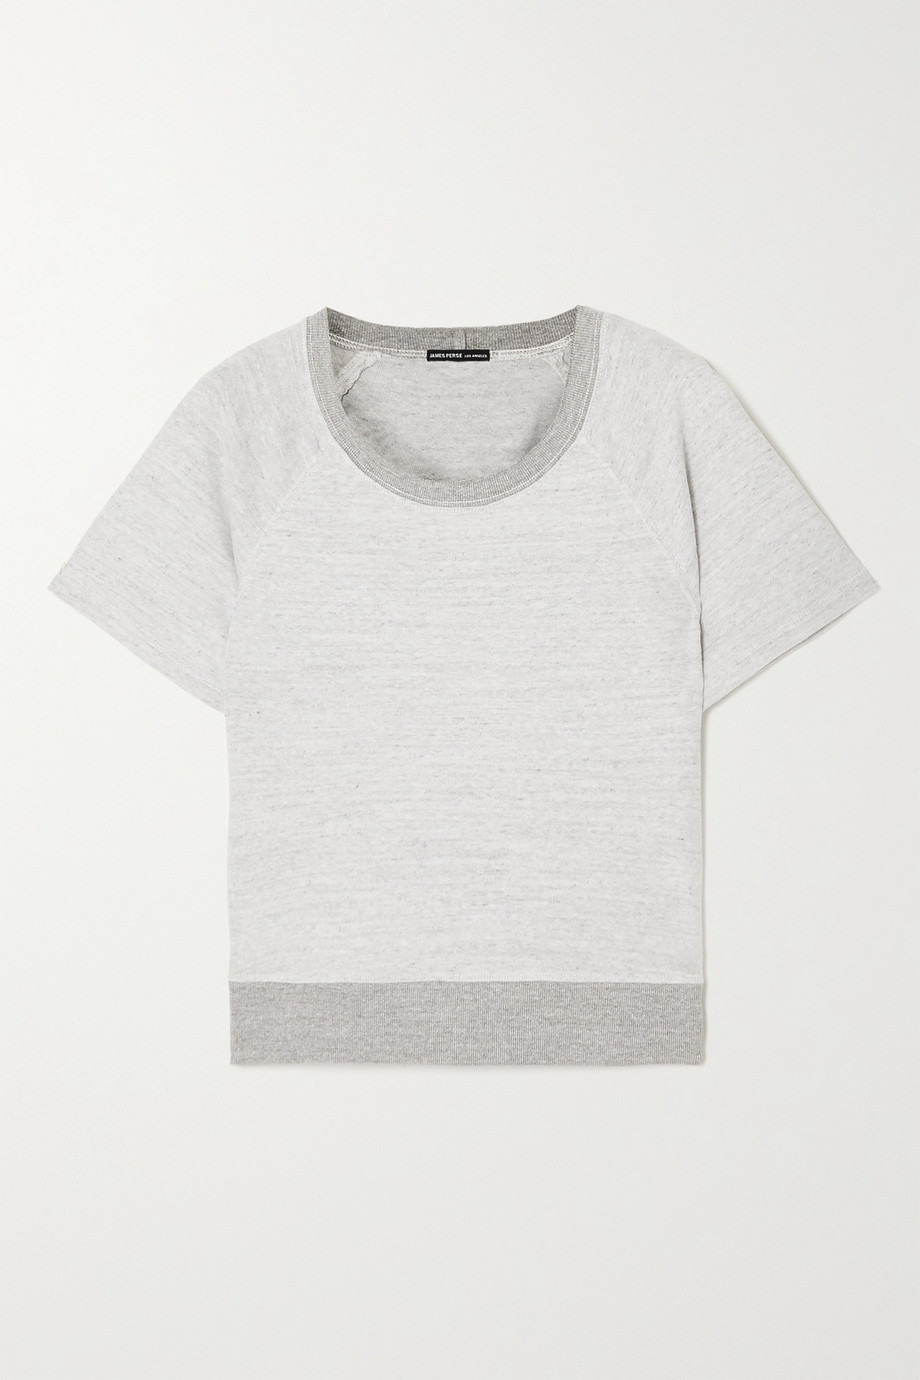 James Perse Patched mélange cotton-jersey top